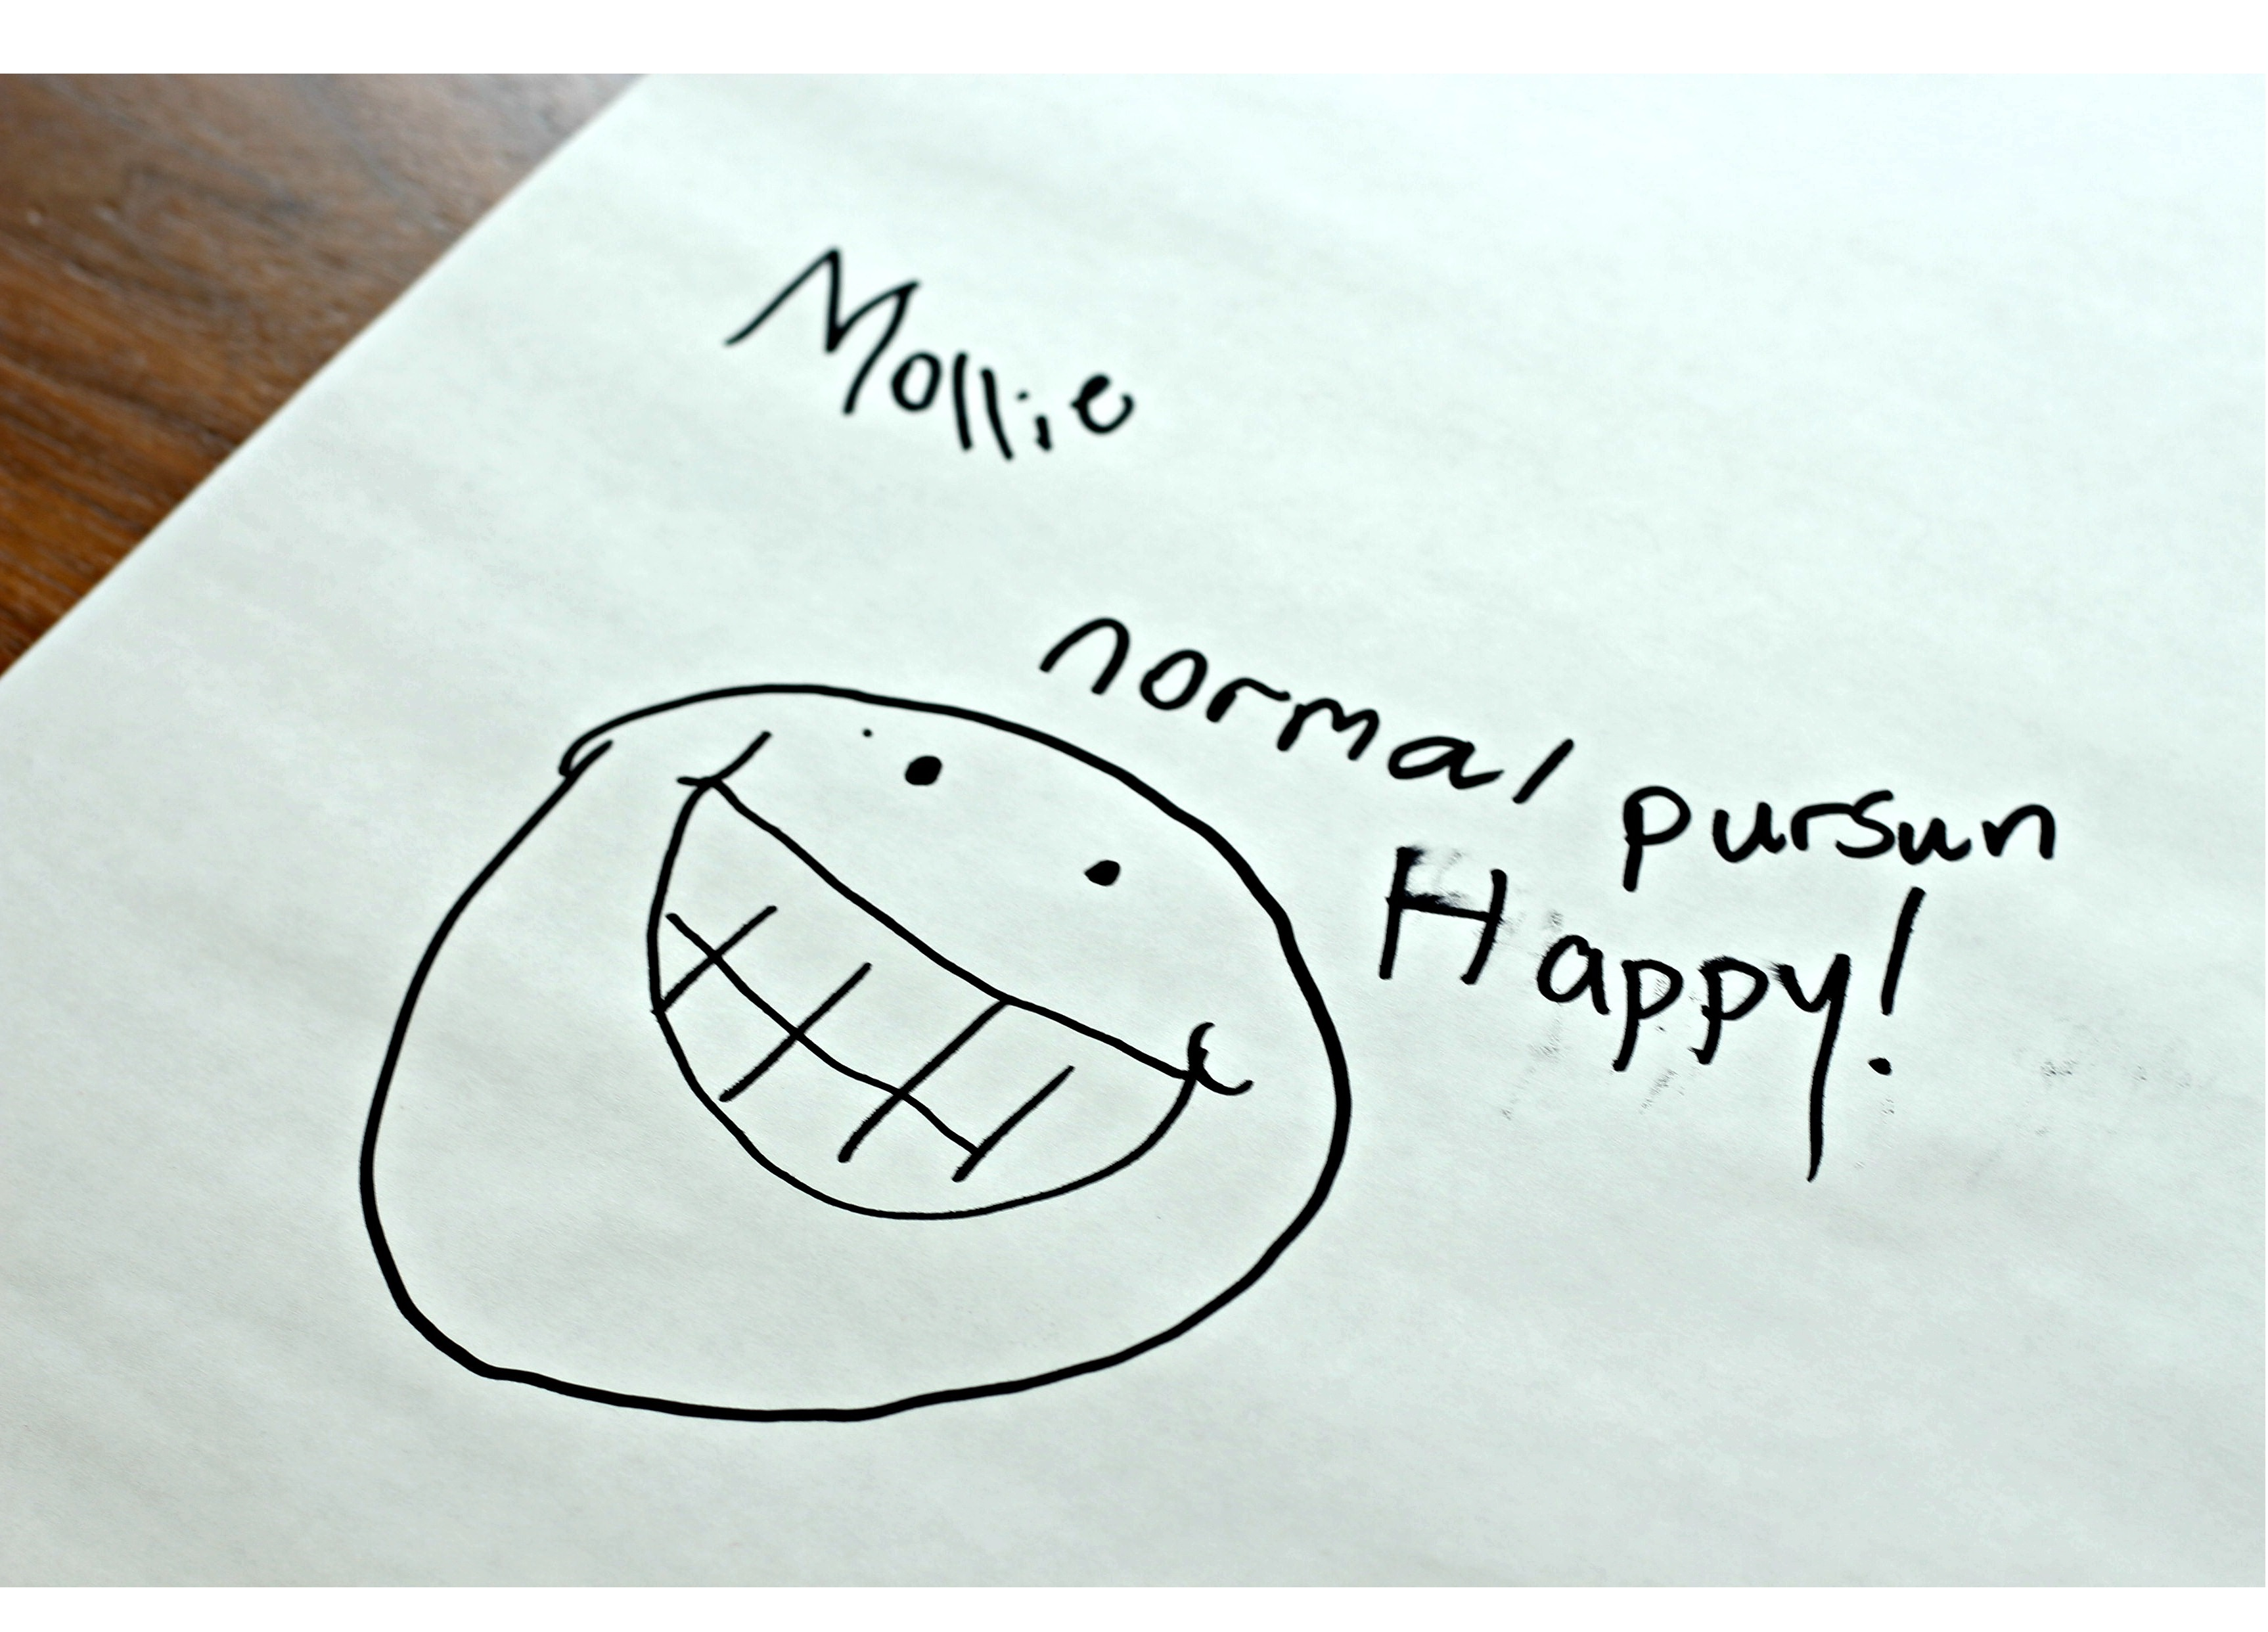 "A drawing of a smiley text with text that reads ""Mollie - normal pursun - Happy!"""